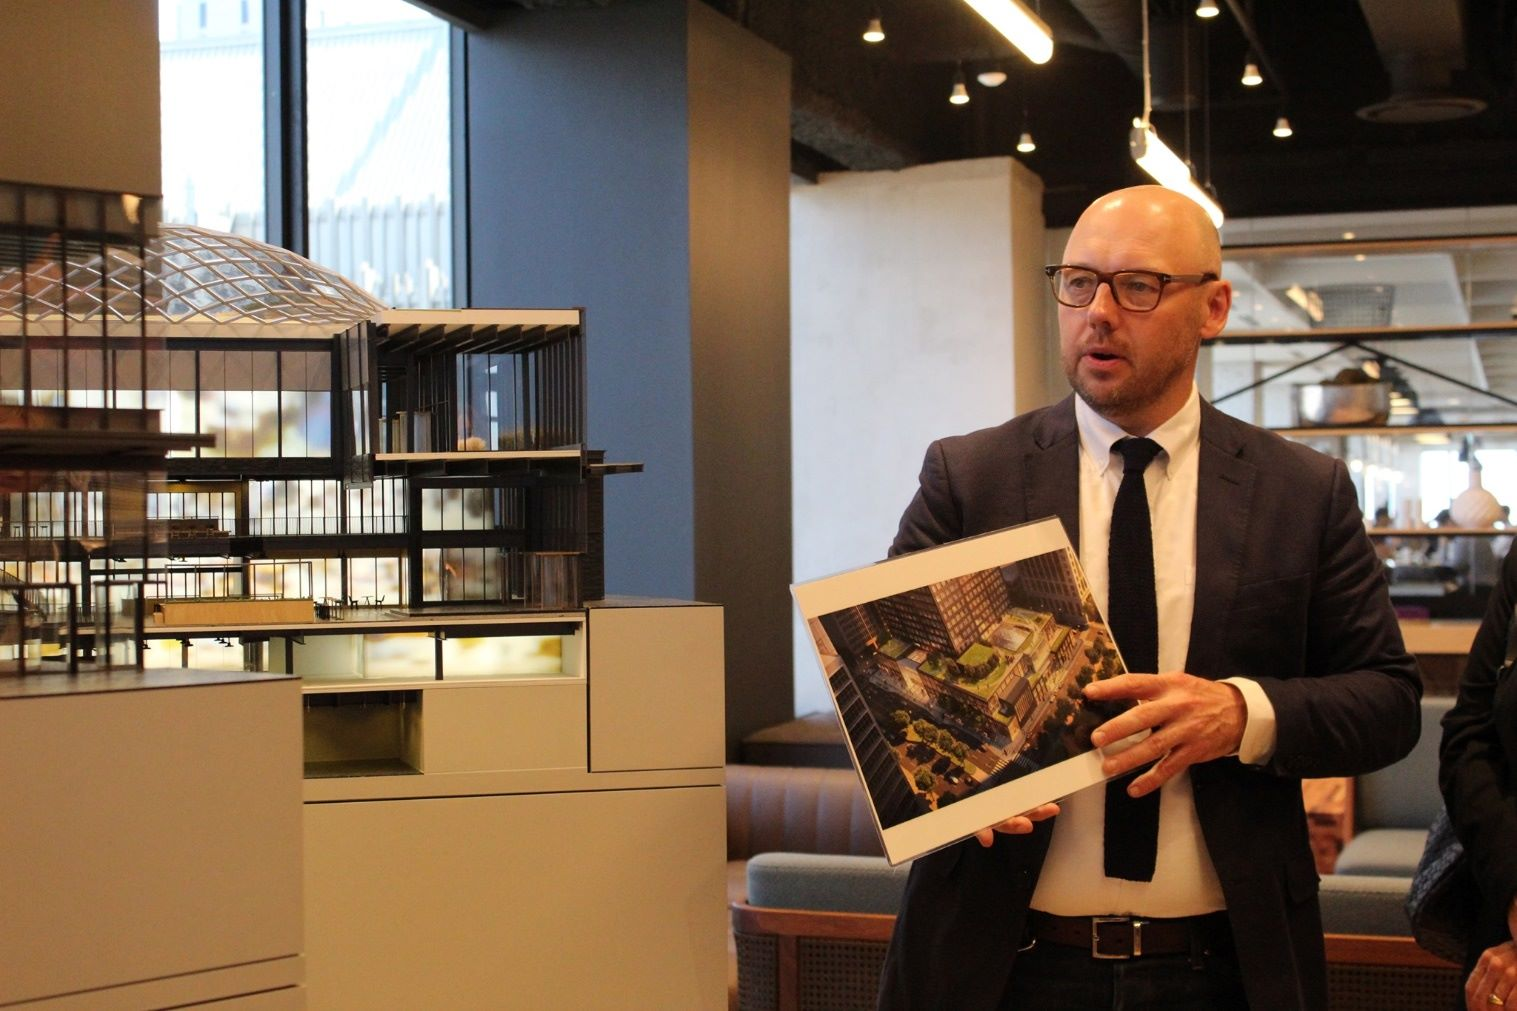 Gensler architect present to clients of the building model